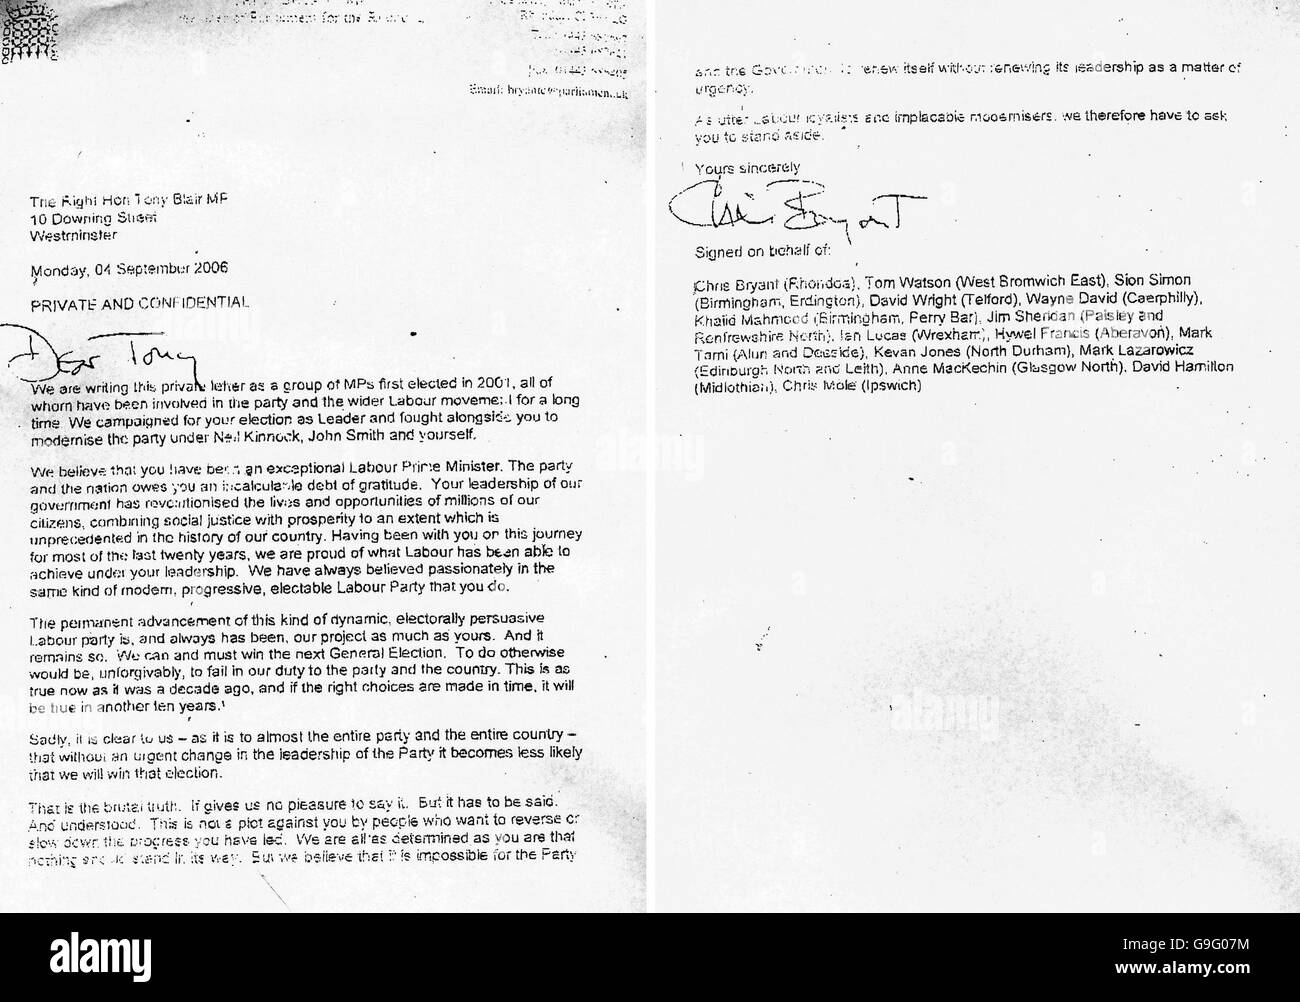 Letter sent by MPs to Tony Blair calling for his resignation - Stock Image